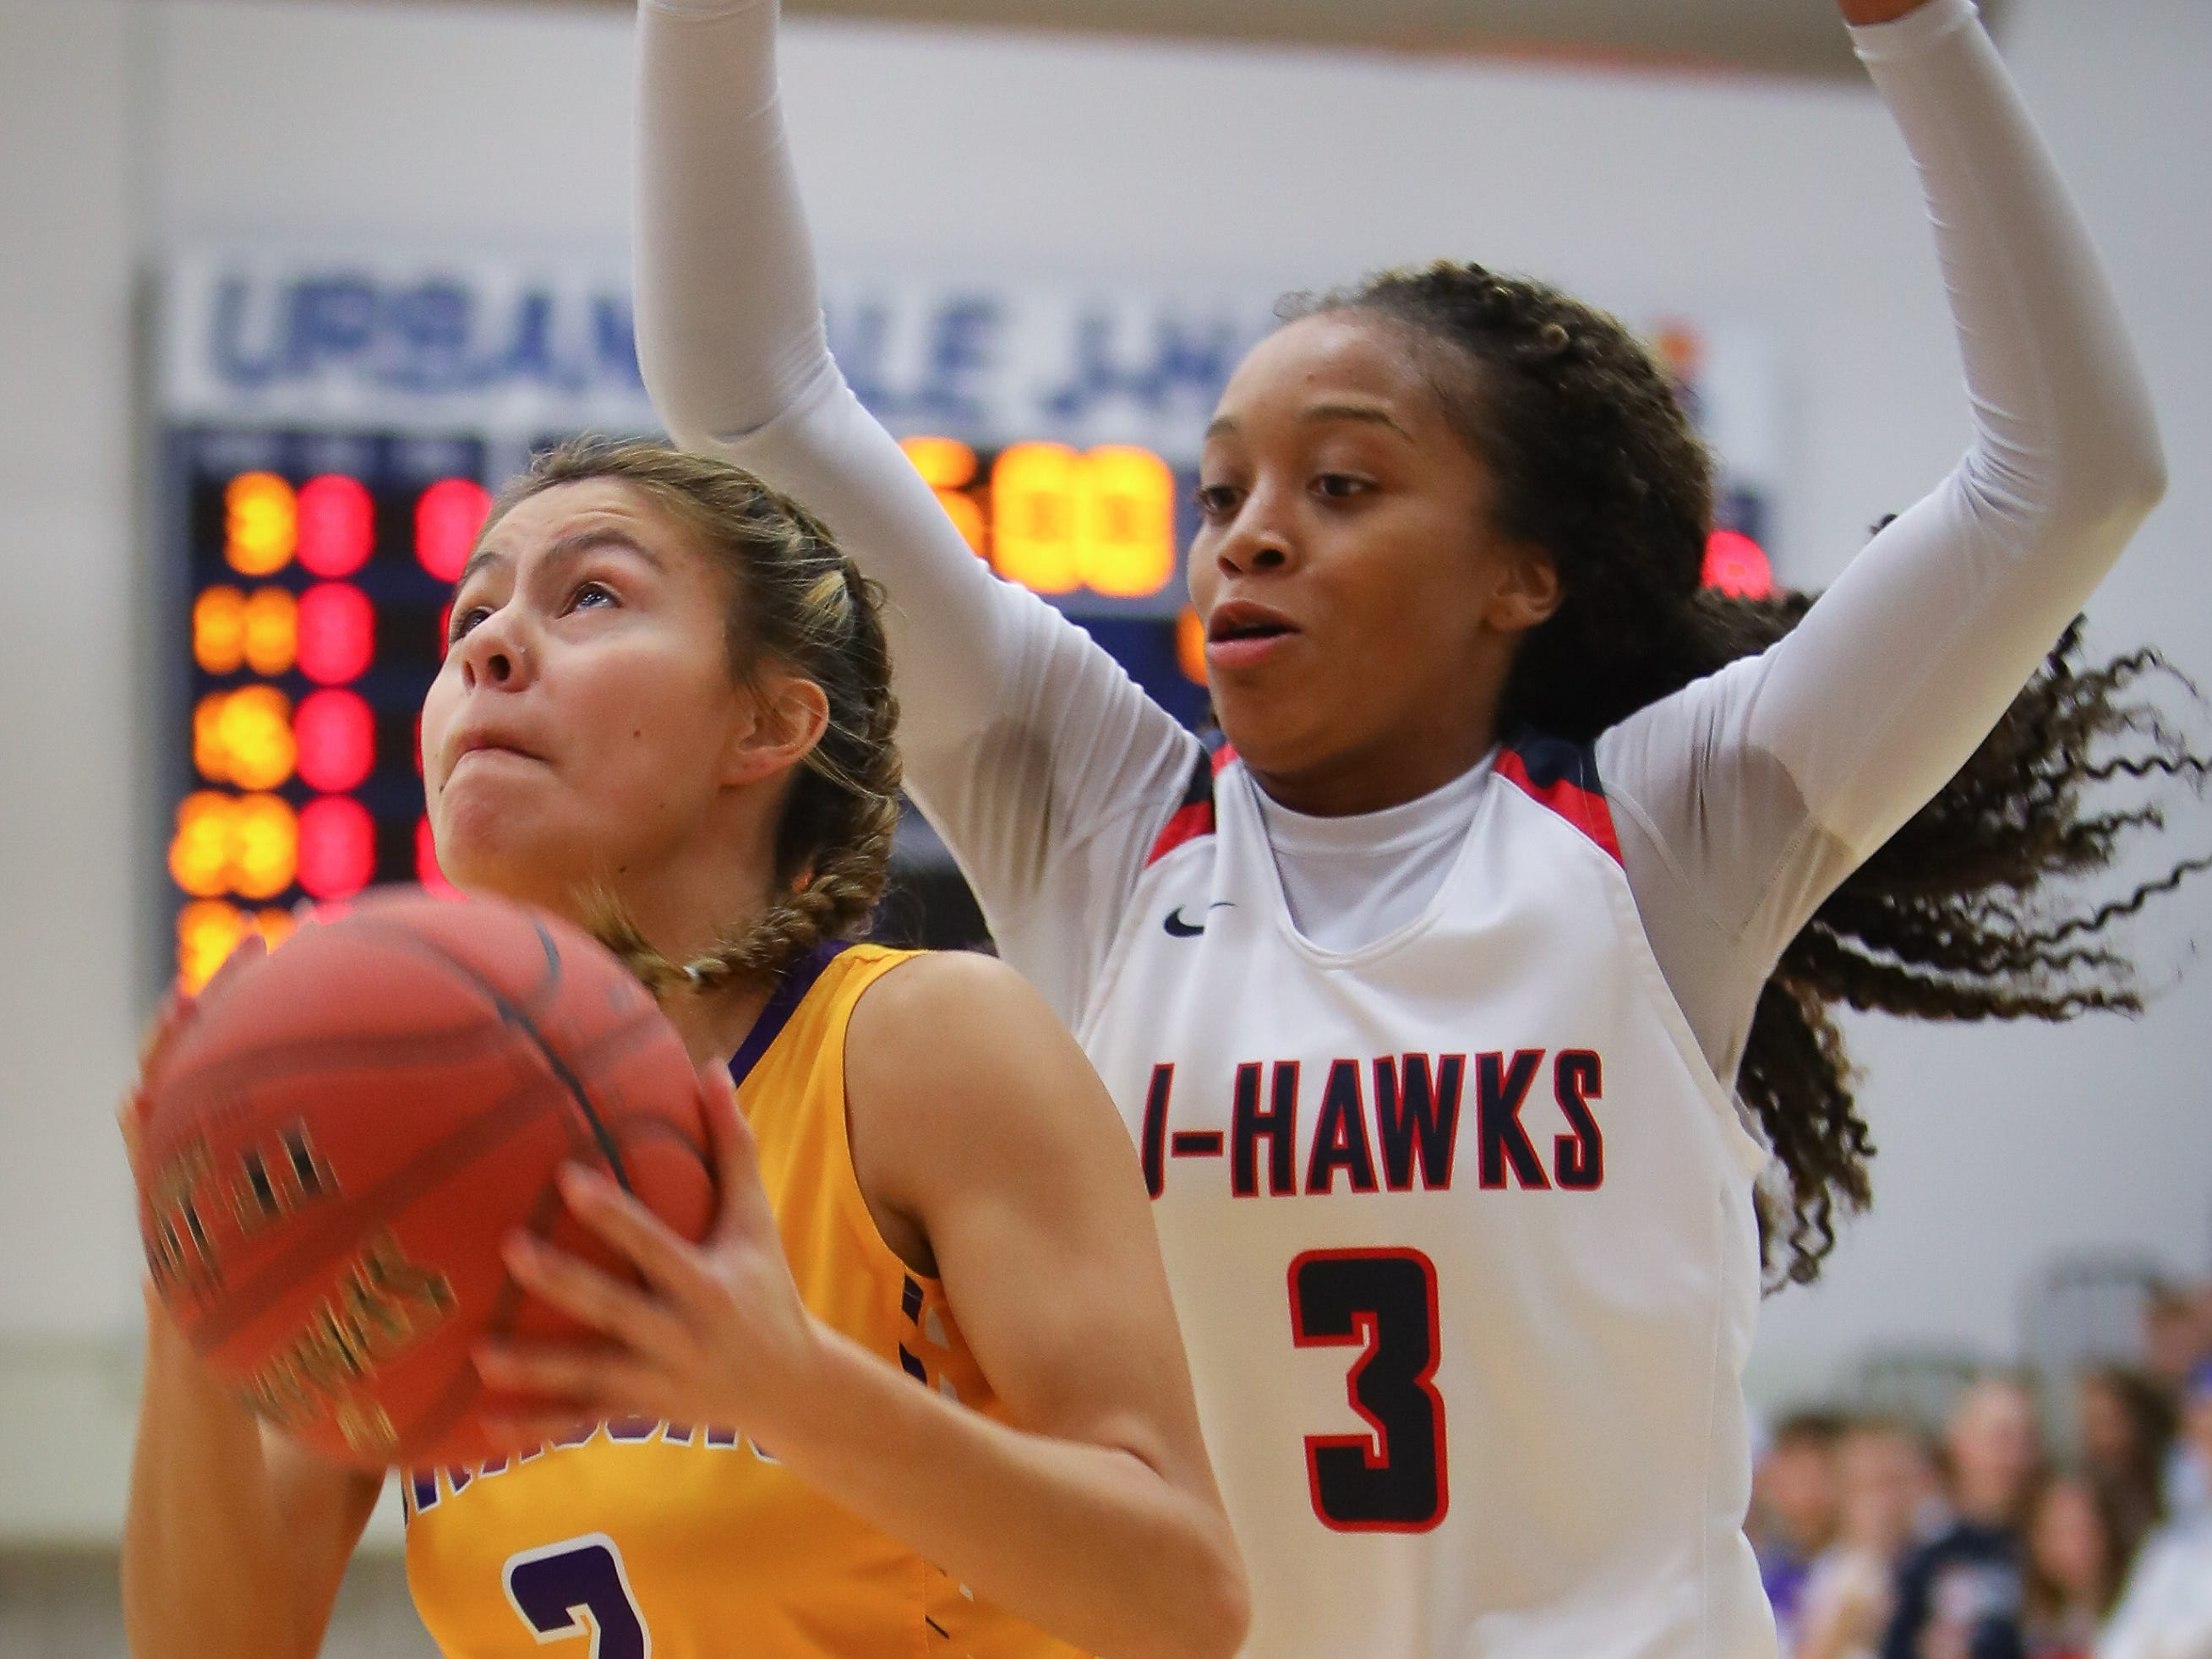 Johnston junior Maya McDermott goes for a field goal as Urbandale senior Dee Dee Pryor attempts to block the shot during a girls high school basketball game between the Johnston Dragons and the Urbandale J-Hawks at Urbandale High School on Dec. 18, 2018 in Urbandale, Iowa.